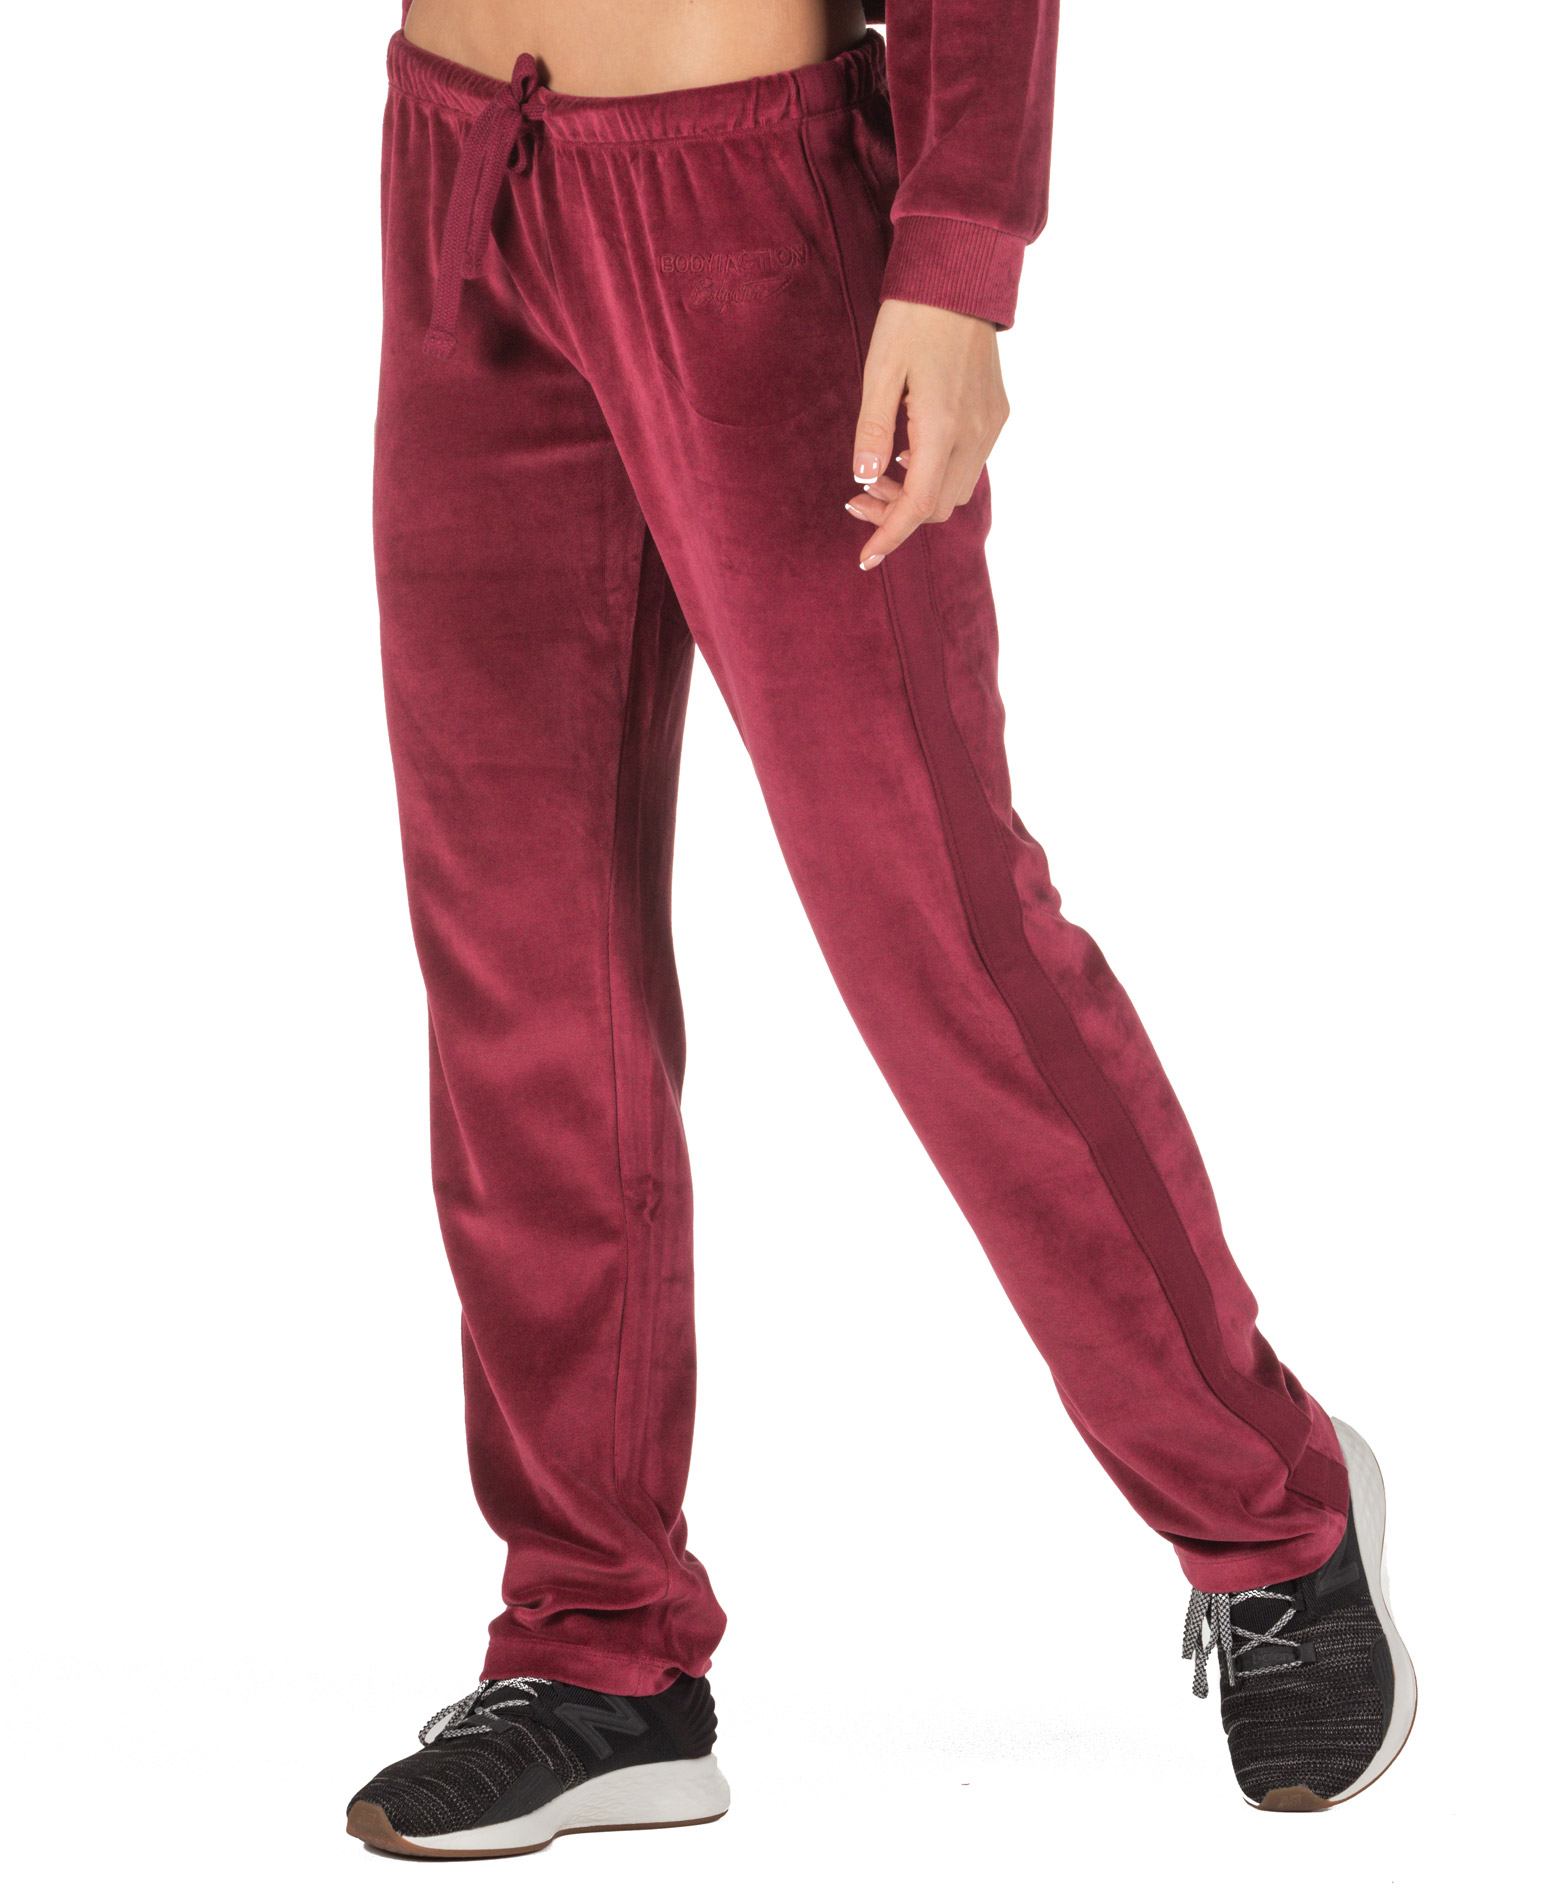 BODY ACTION VELOUR TRIMMED PANTS 021844-01-08D Μπορντό